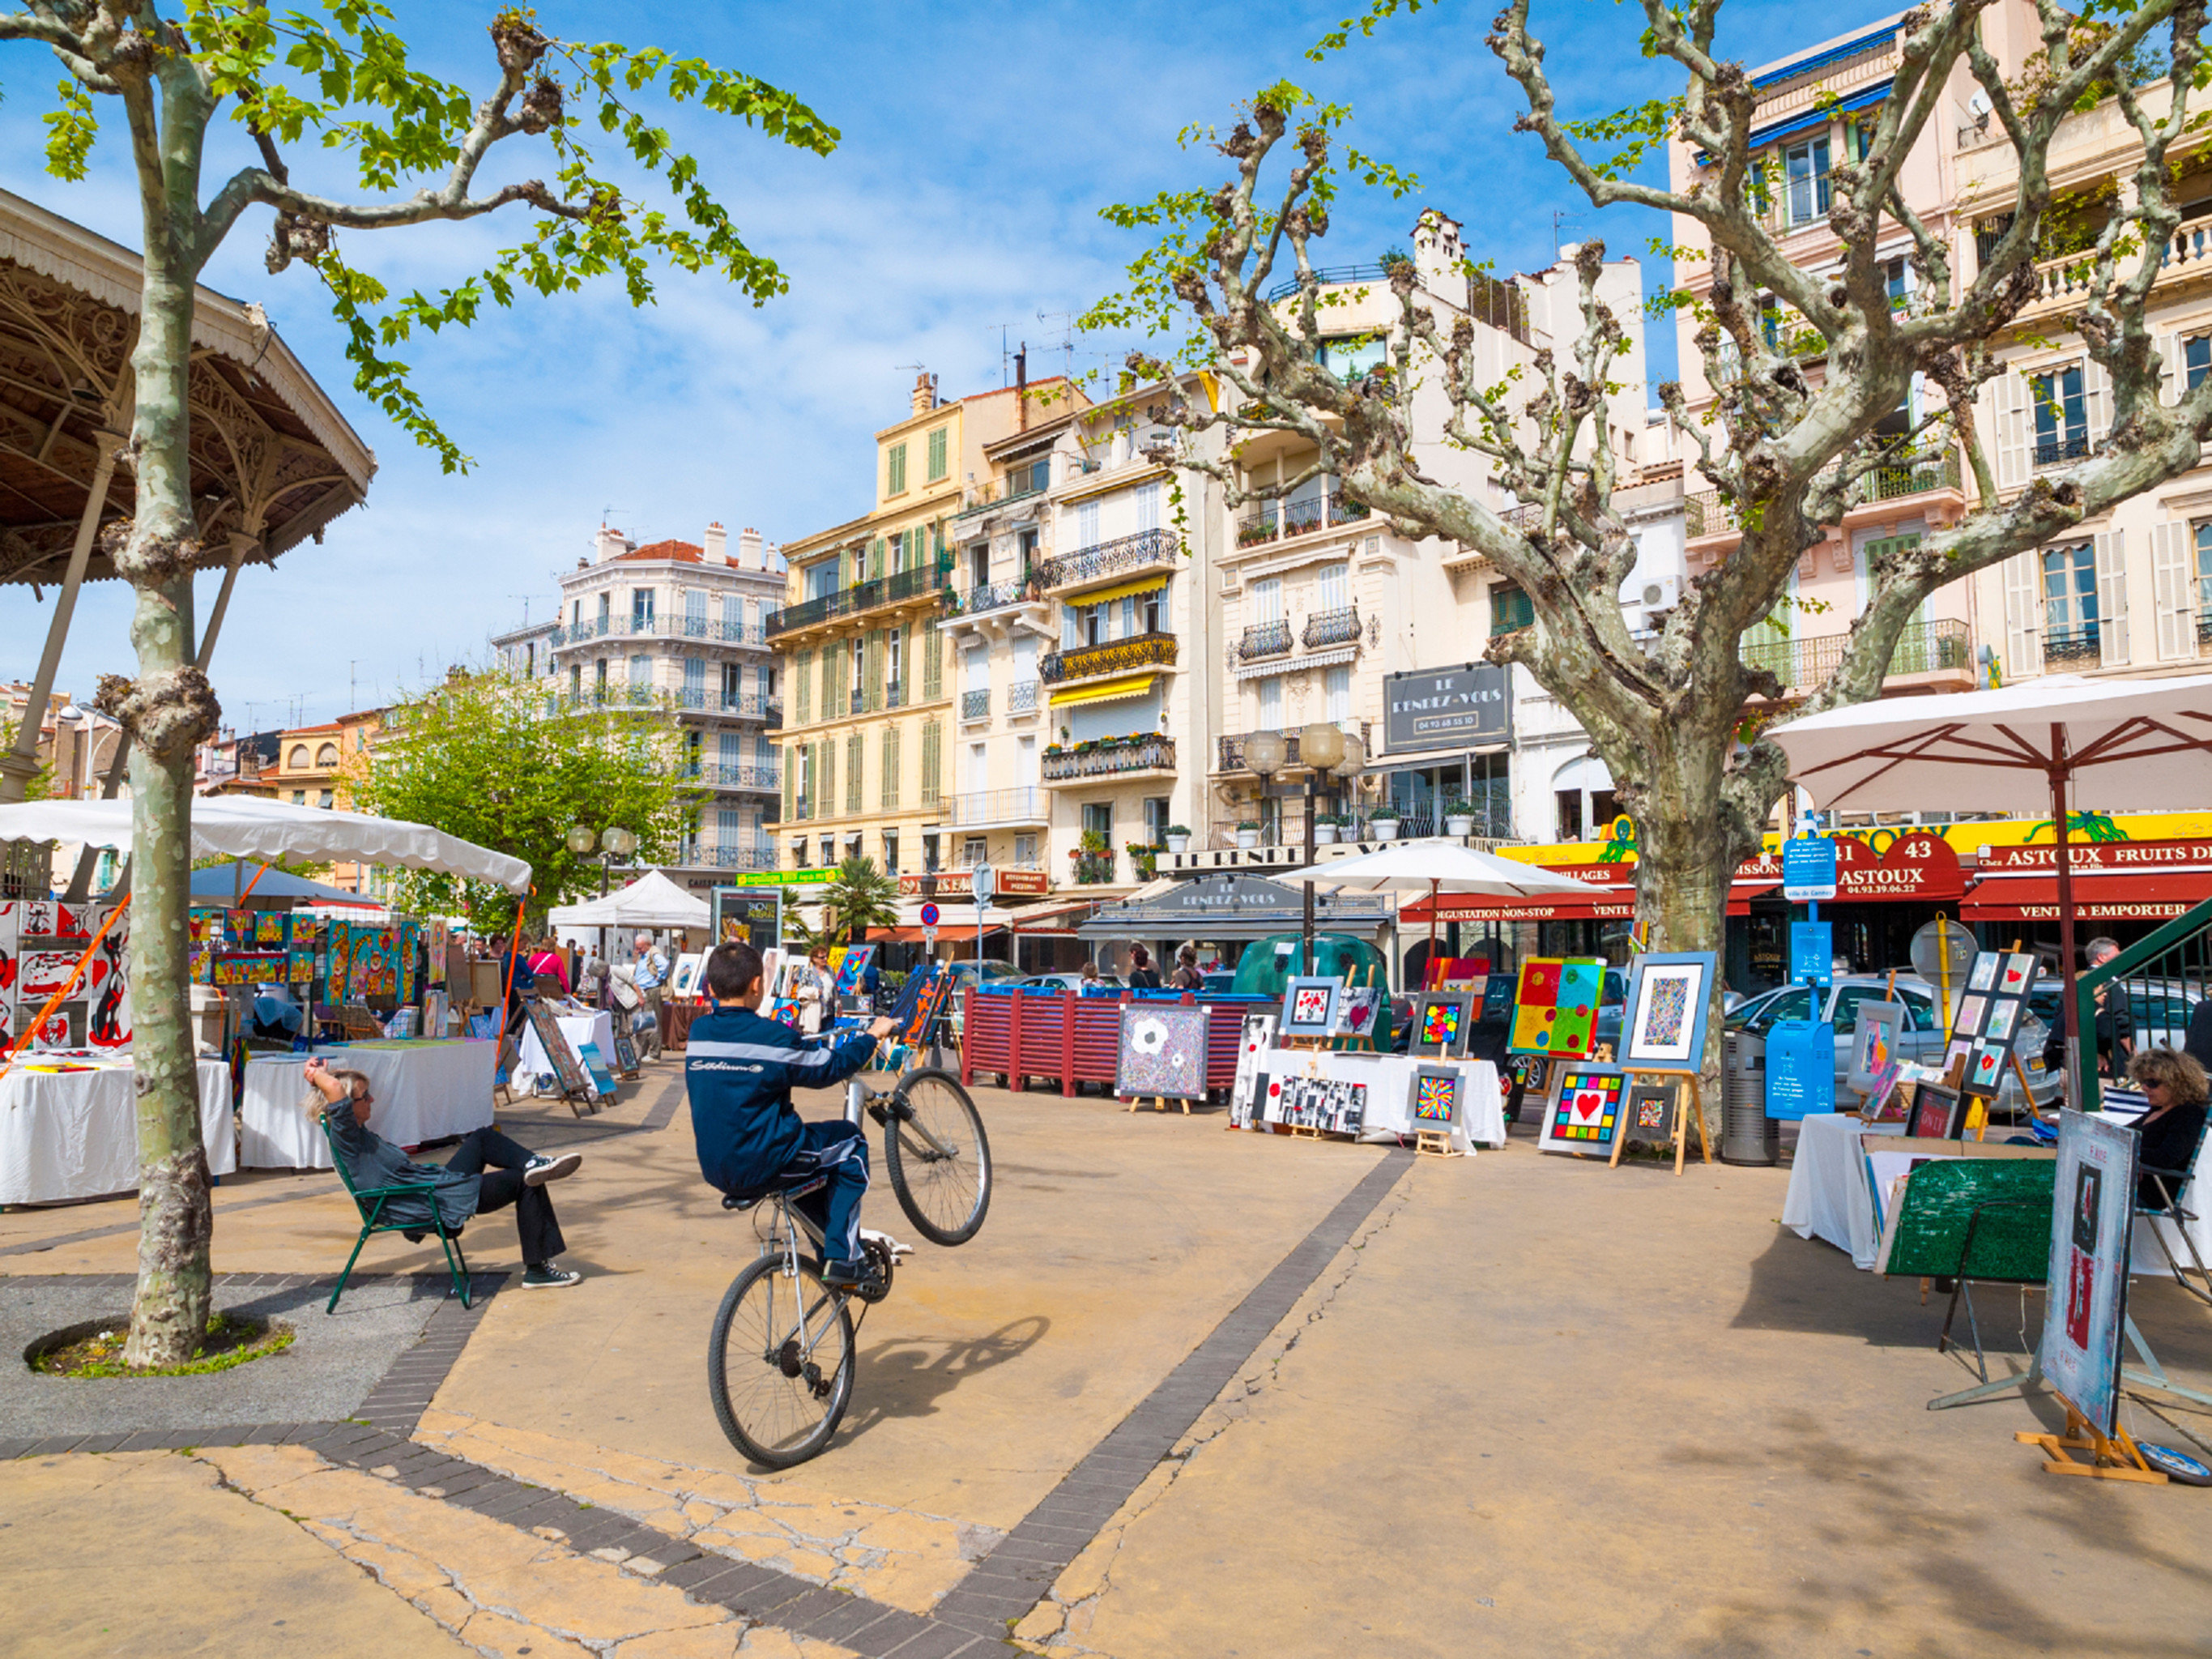 City Cultural Outdoors tree Town road neighbourhood public space street walkway plaza vehicle infrastructure Downtown boardwalk town square